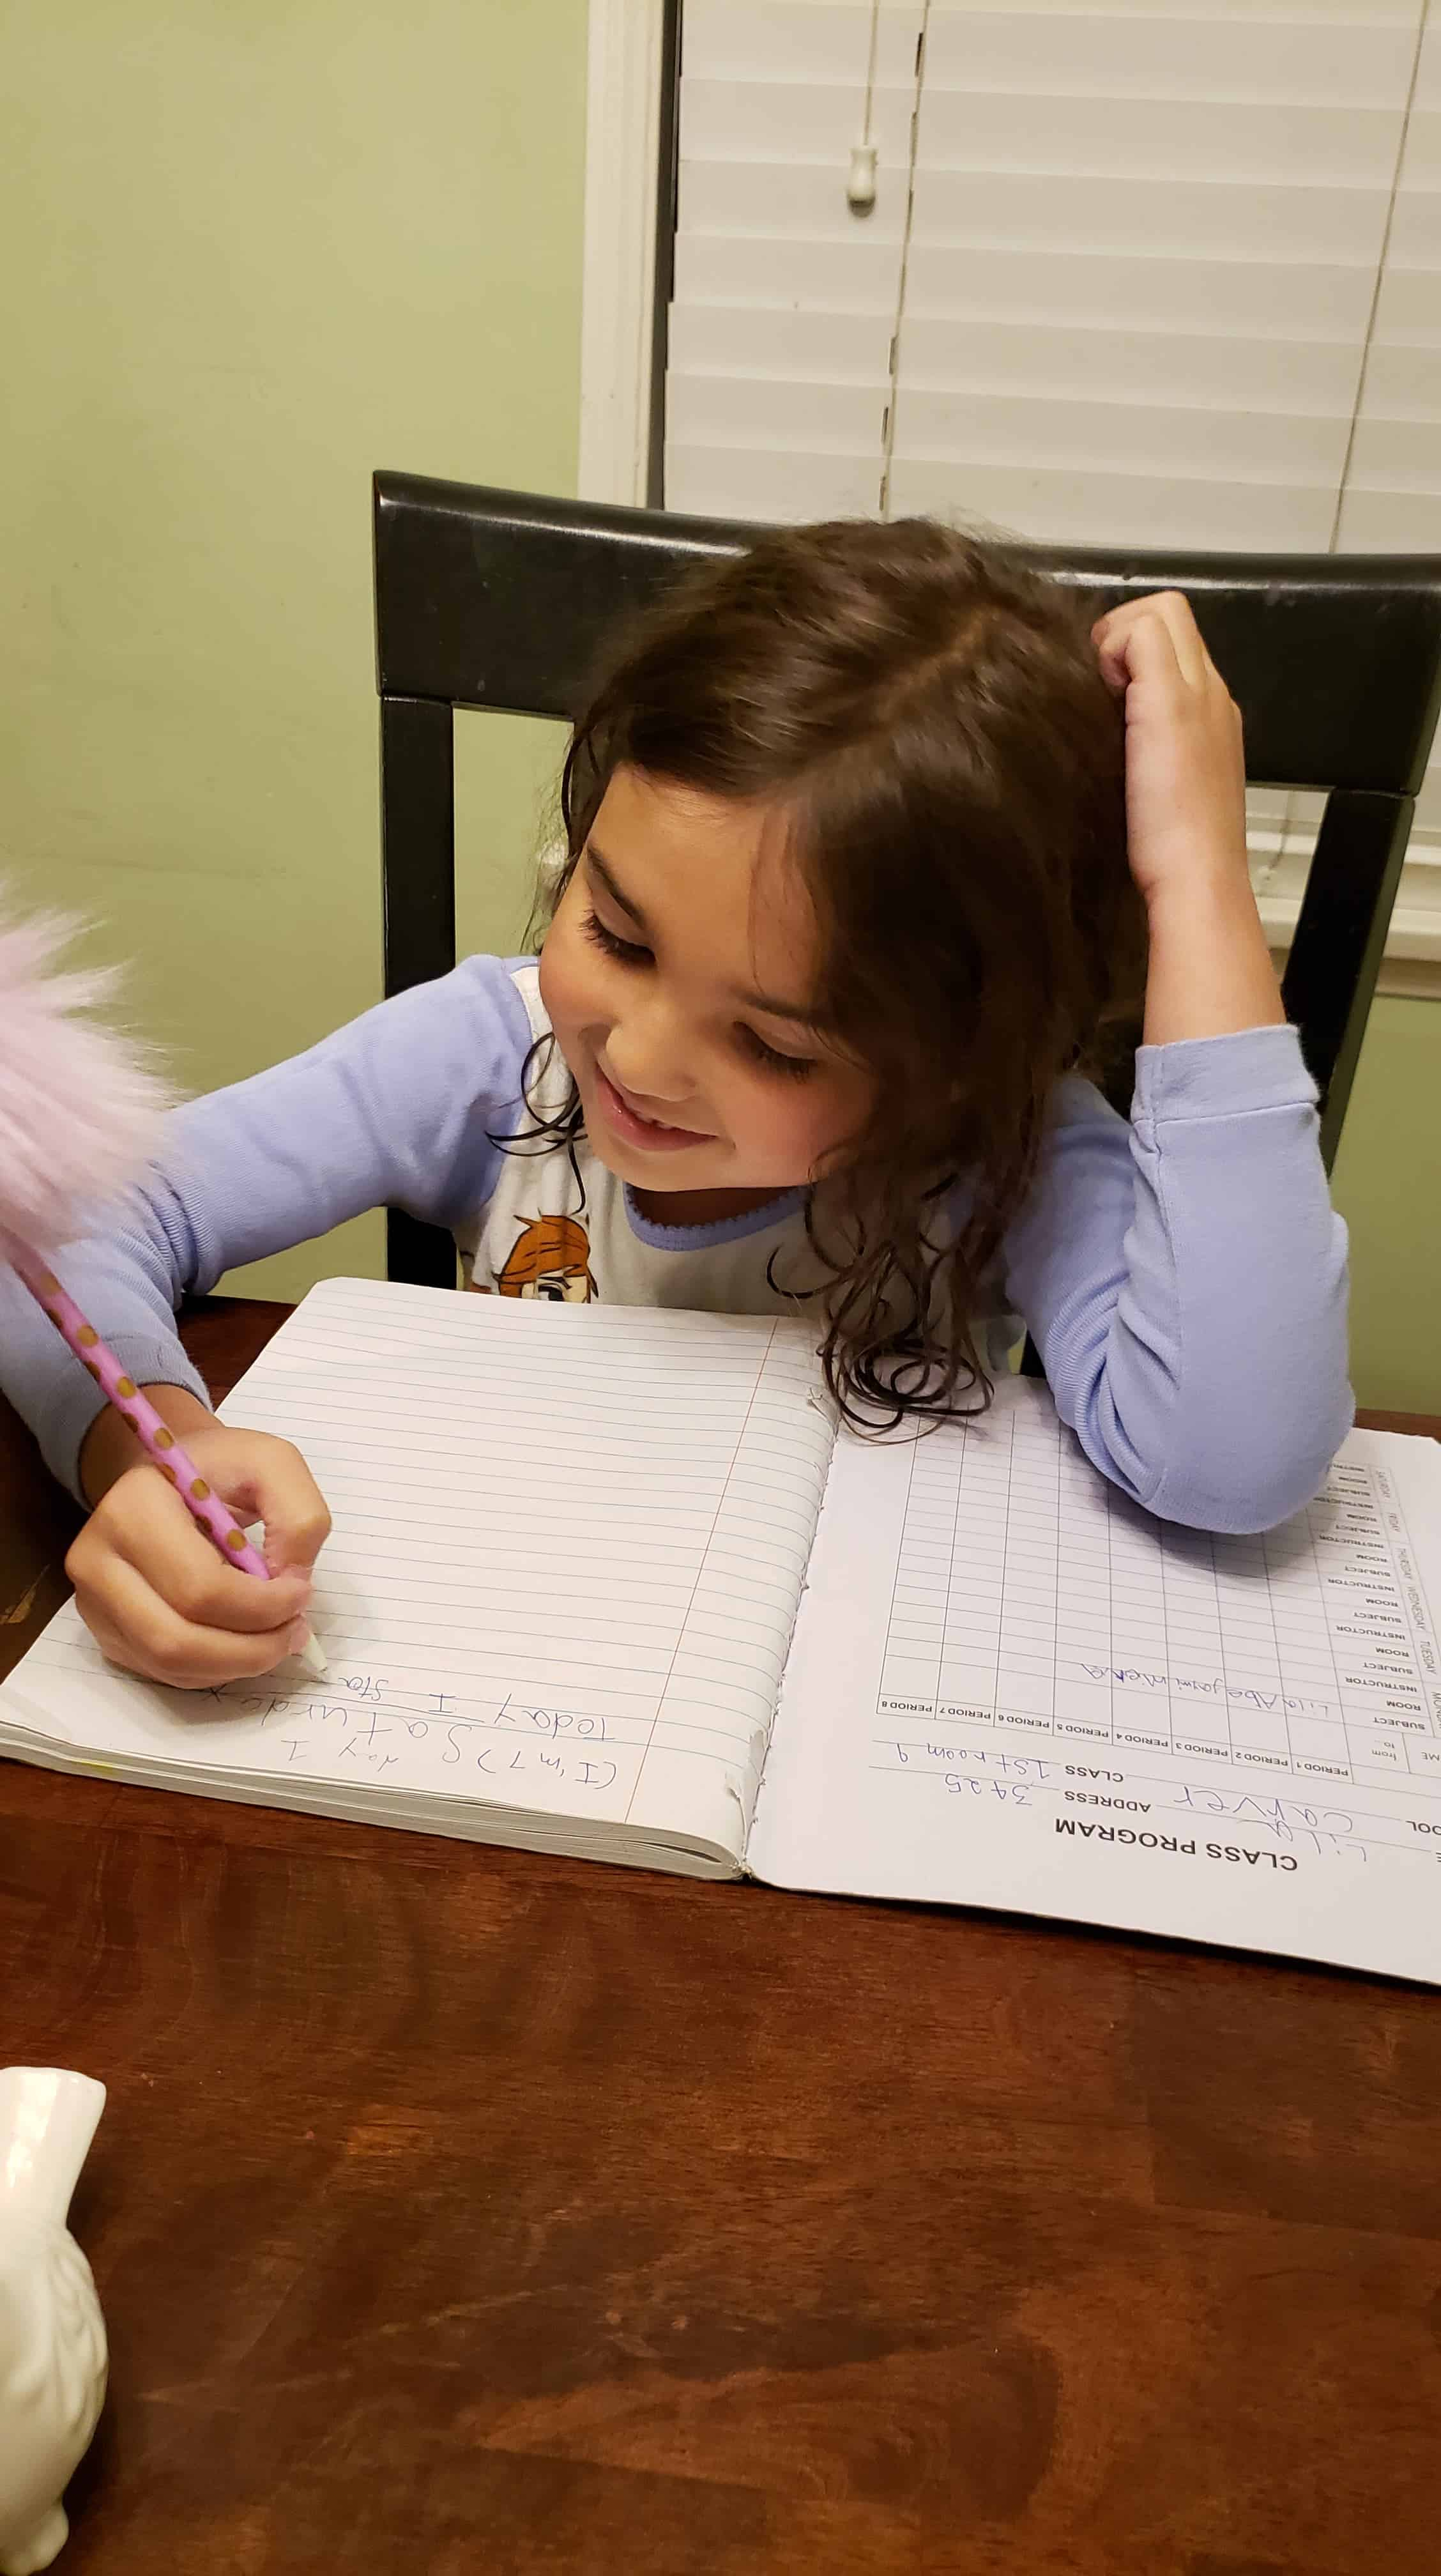 Little girl writing in a composition notebook.